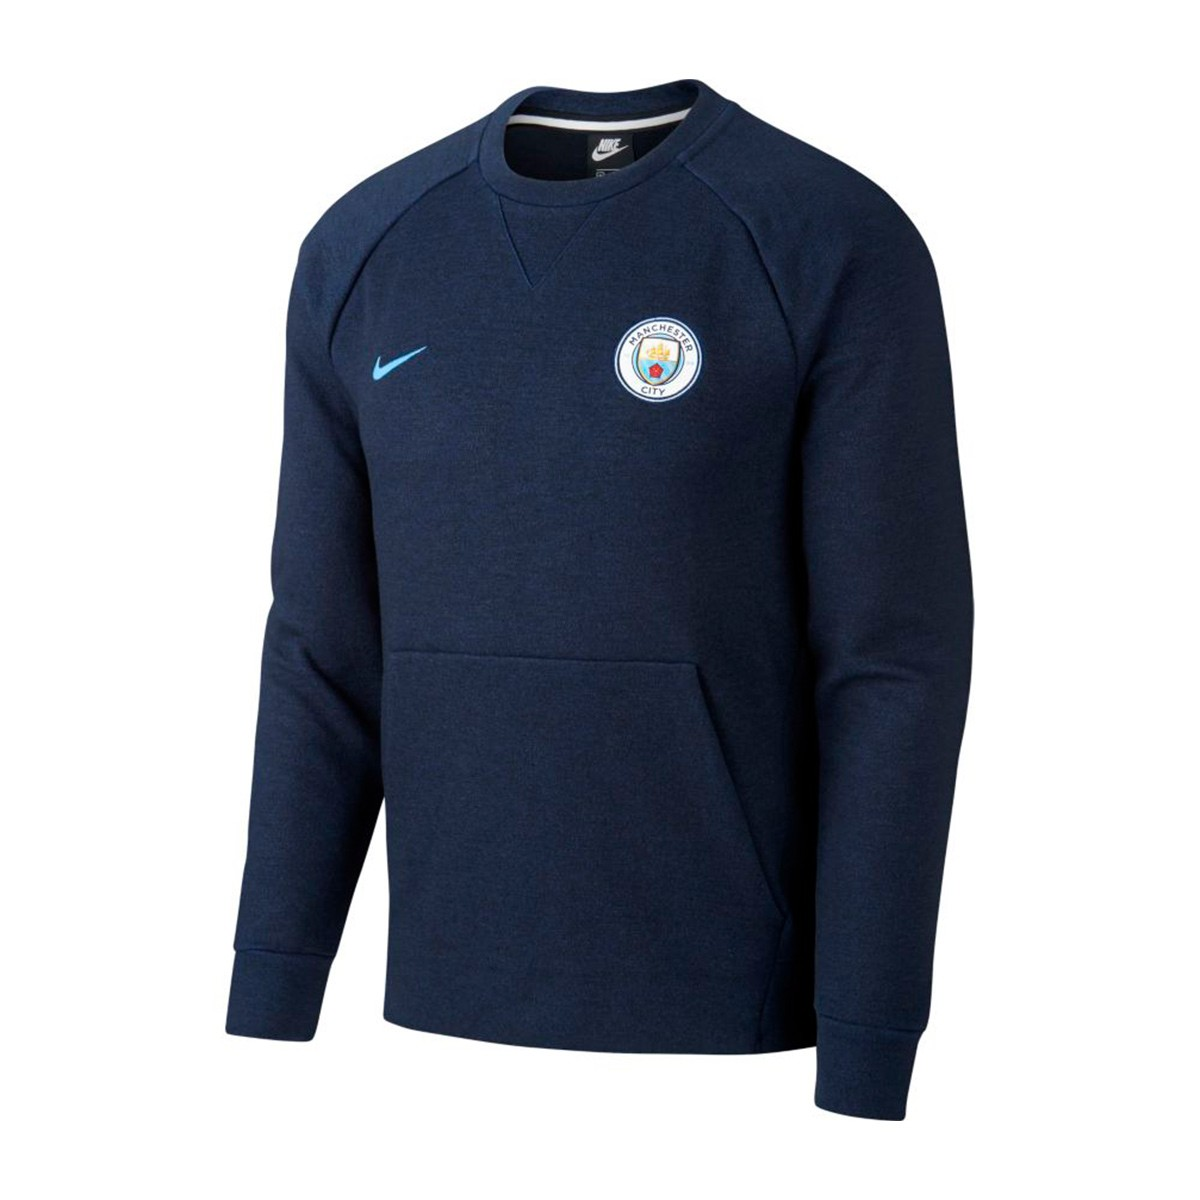 897532e25 Sweatshirt Nike Manchester City FC 2018-2019 Black-Midnight navy ...